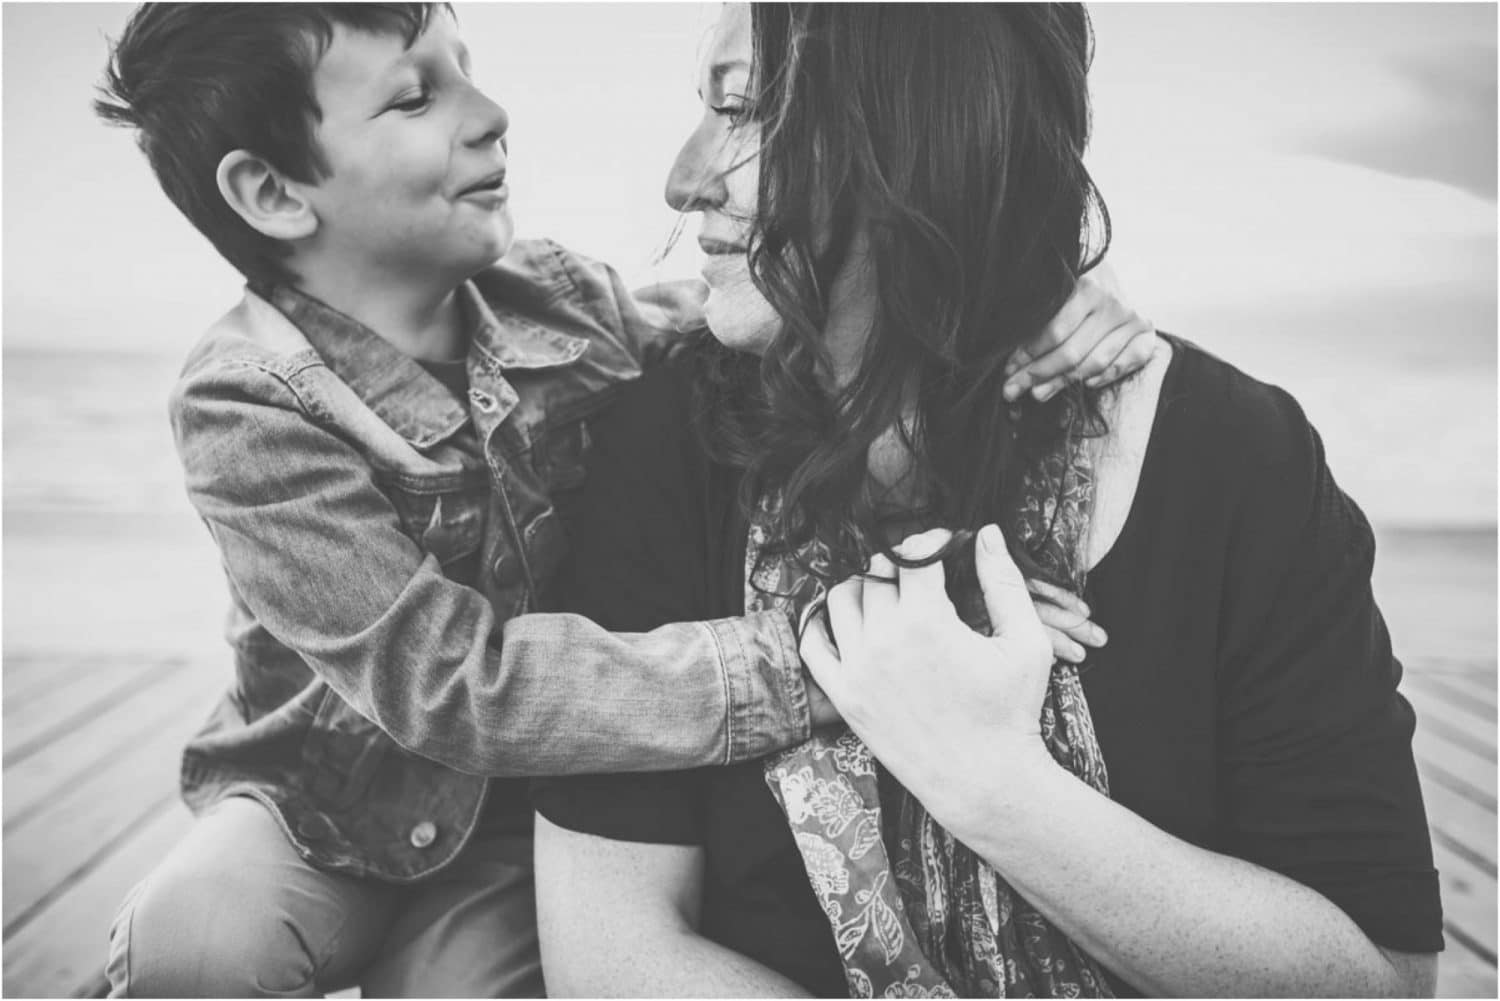 Inna + Michael {Mother + Son Love} | Family Photographer Melbourne